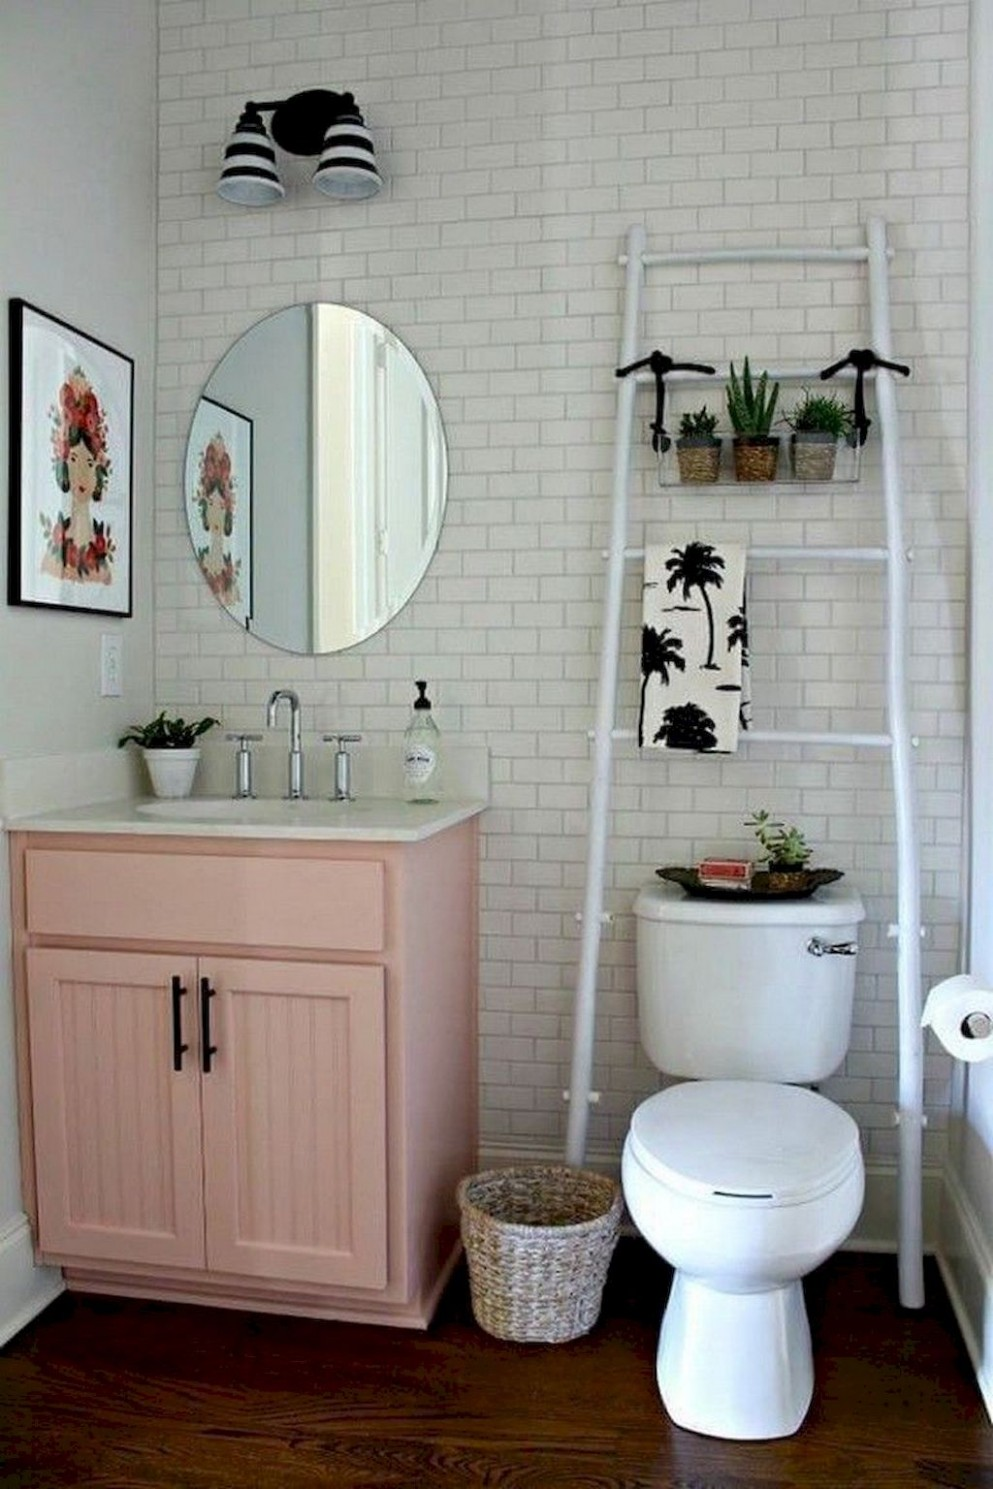 8 First Apartment Decorating Ideas on A Budget en 8  - Apartment Bathroom Decorating Ideas On A Budget